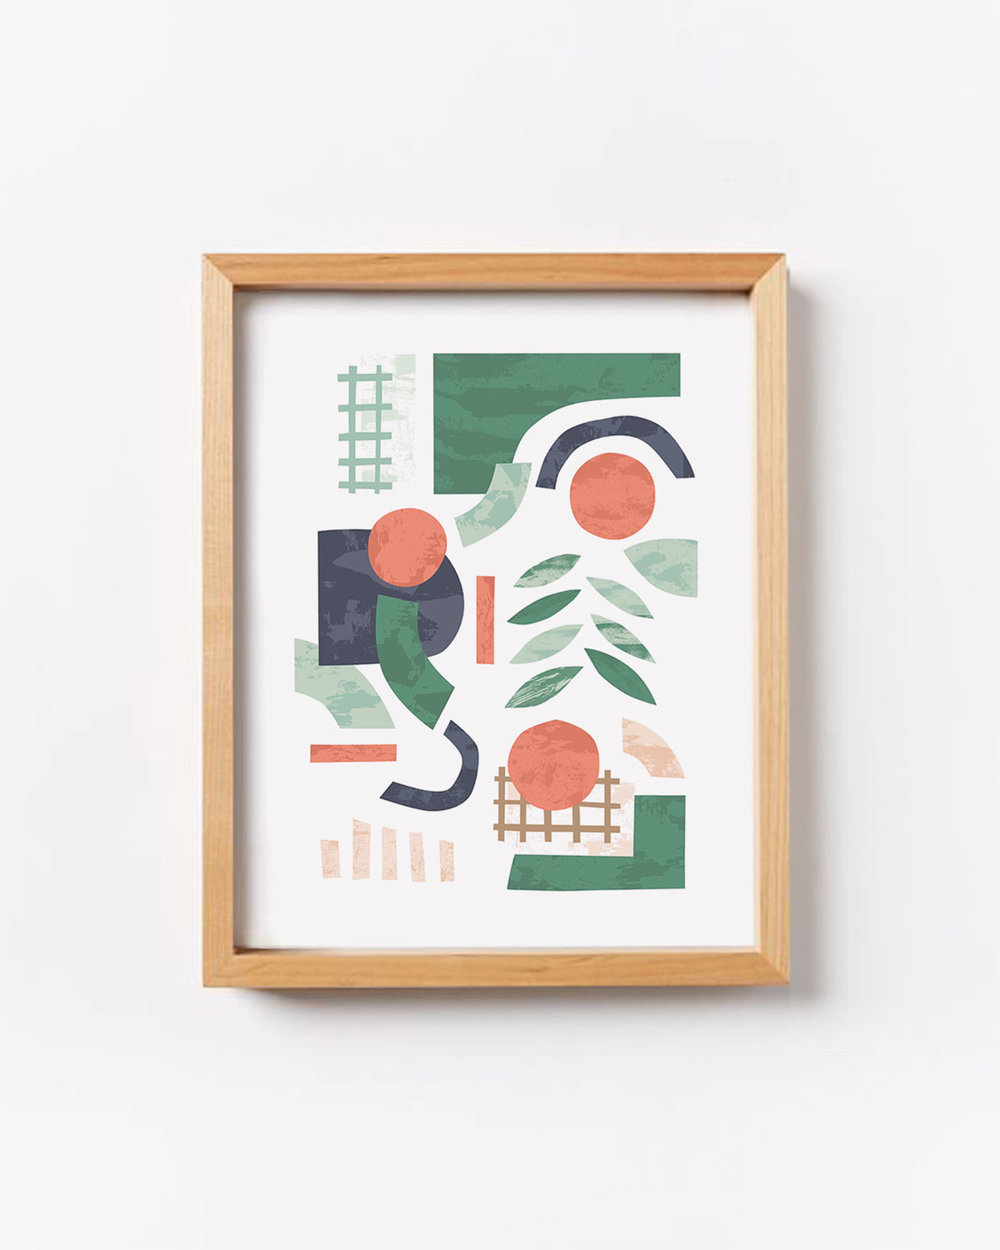 Shake it Up Abstract Art Print - A limited edition print featuring a bold and playful modern abstract illustration. Perfect for bringing a pop of color to your walls!